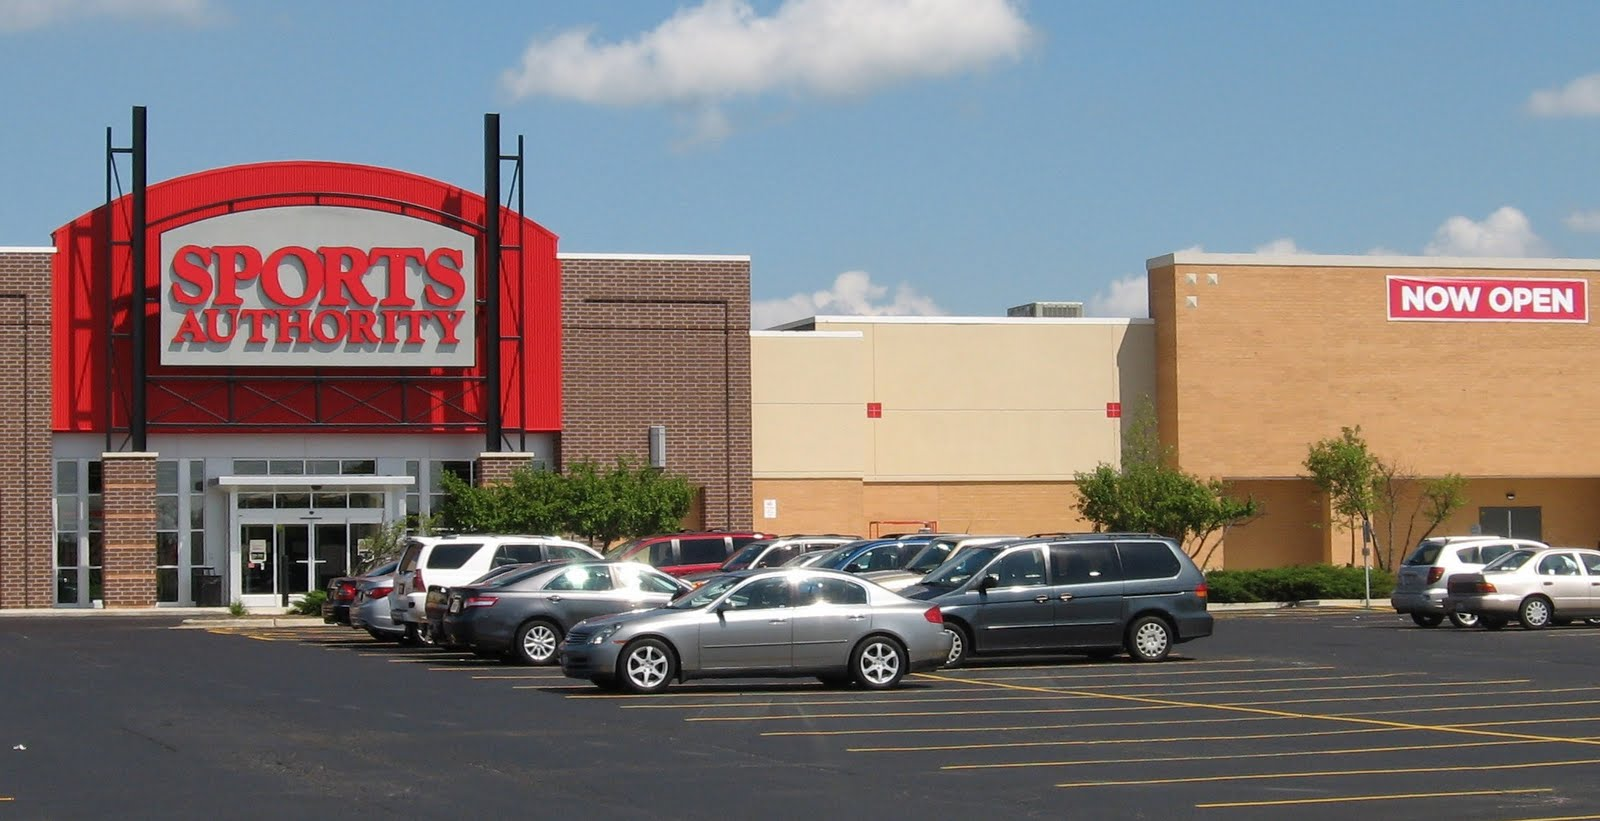 Sports Authority is holding its grand opening on Saturday.